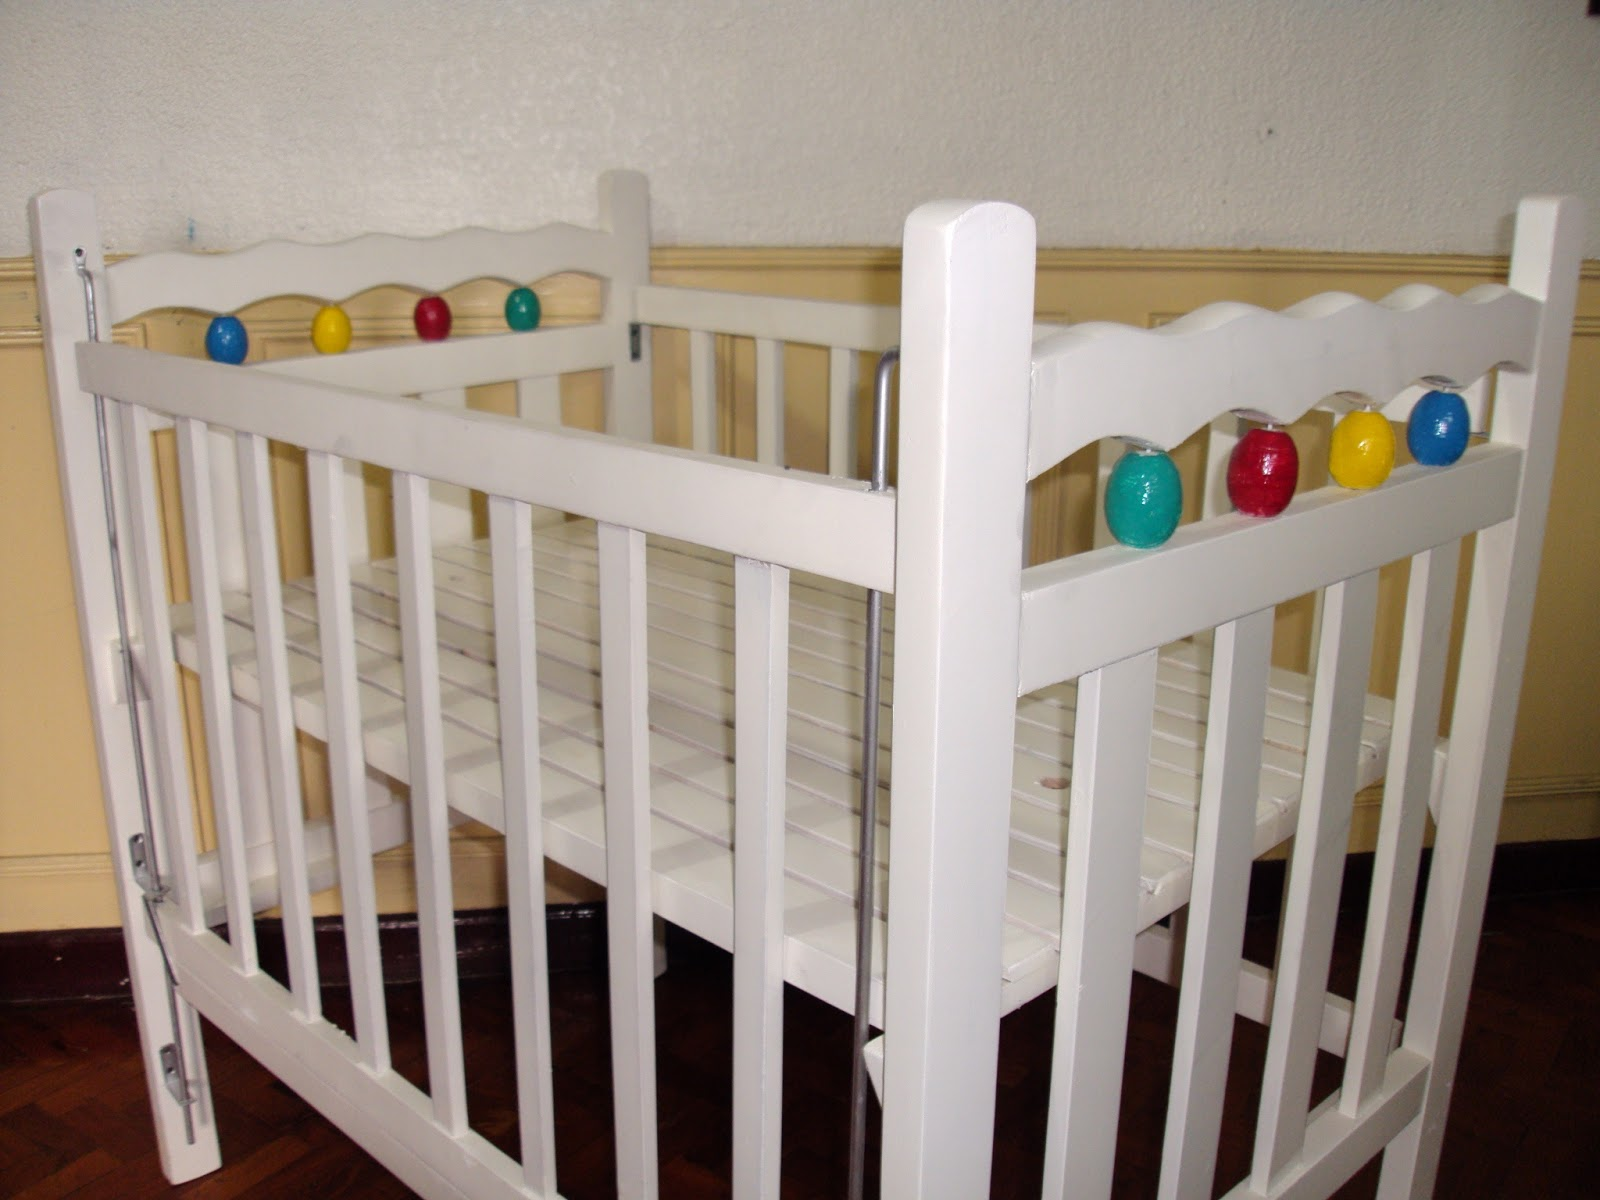 Crib for sale in cebu - Gallery Of Wooden Crib For Sale In Cebu